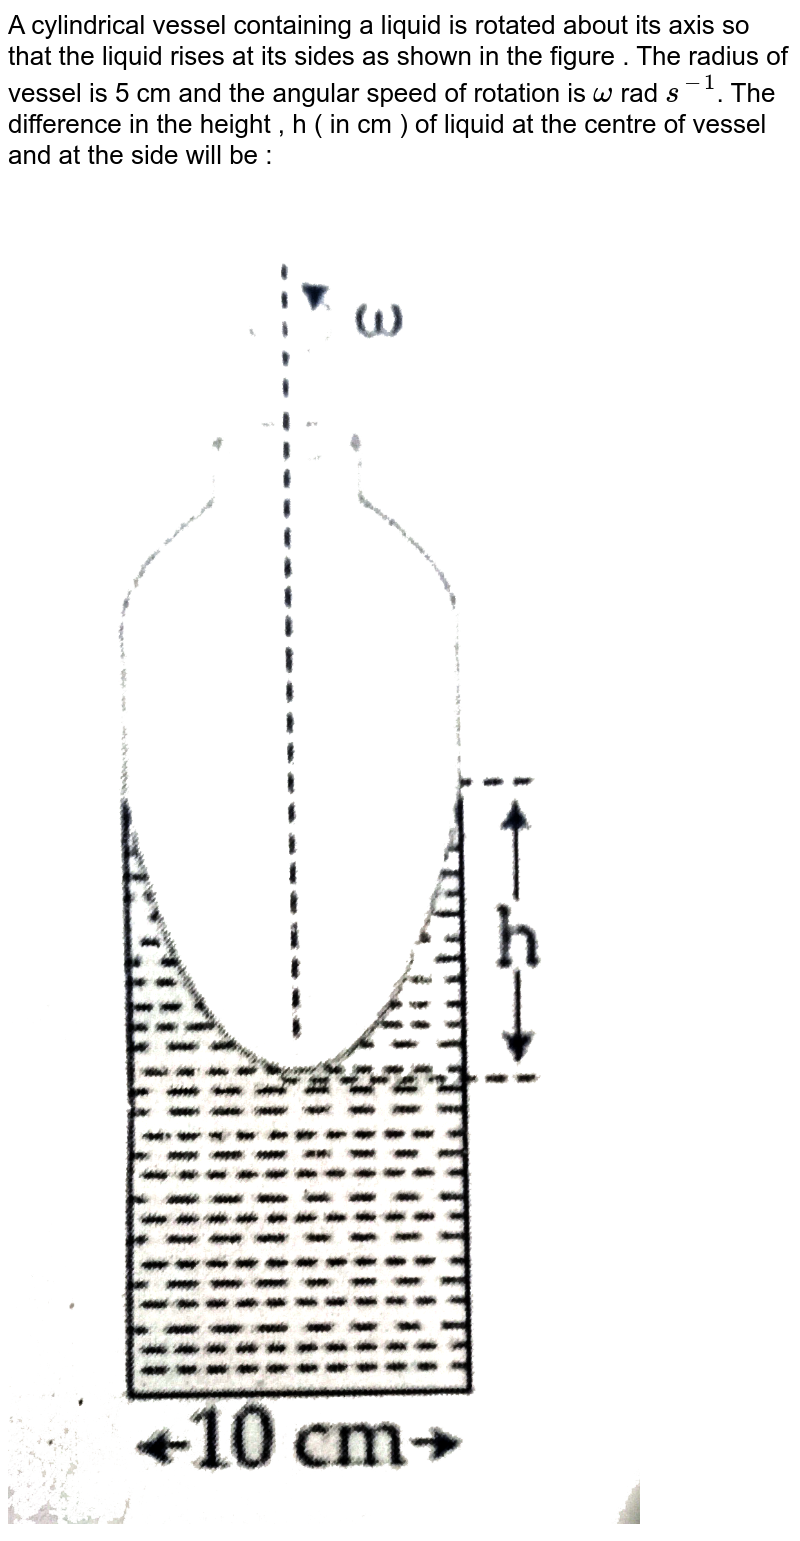 """A cylindrical vessel containing  a liquid  is rotated  about its axis so that the liquid  rises  at its sides as shown in the figure  . The radius of vessel is 5 cm and the angular  speed  of rotation is ` omega` rad `s^(-1)`. The difference  in the height  , h ( in cm ) of liquid  at the centre  of vessel and at the side will be : <br> <img src=""""https://d10lpgp6xz60nq.cloudfront.net/physics_images/JE_MAIN_06_09_20_S1_E01_003_Q01.png"""" width=""""80%"""">"""